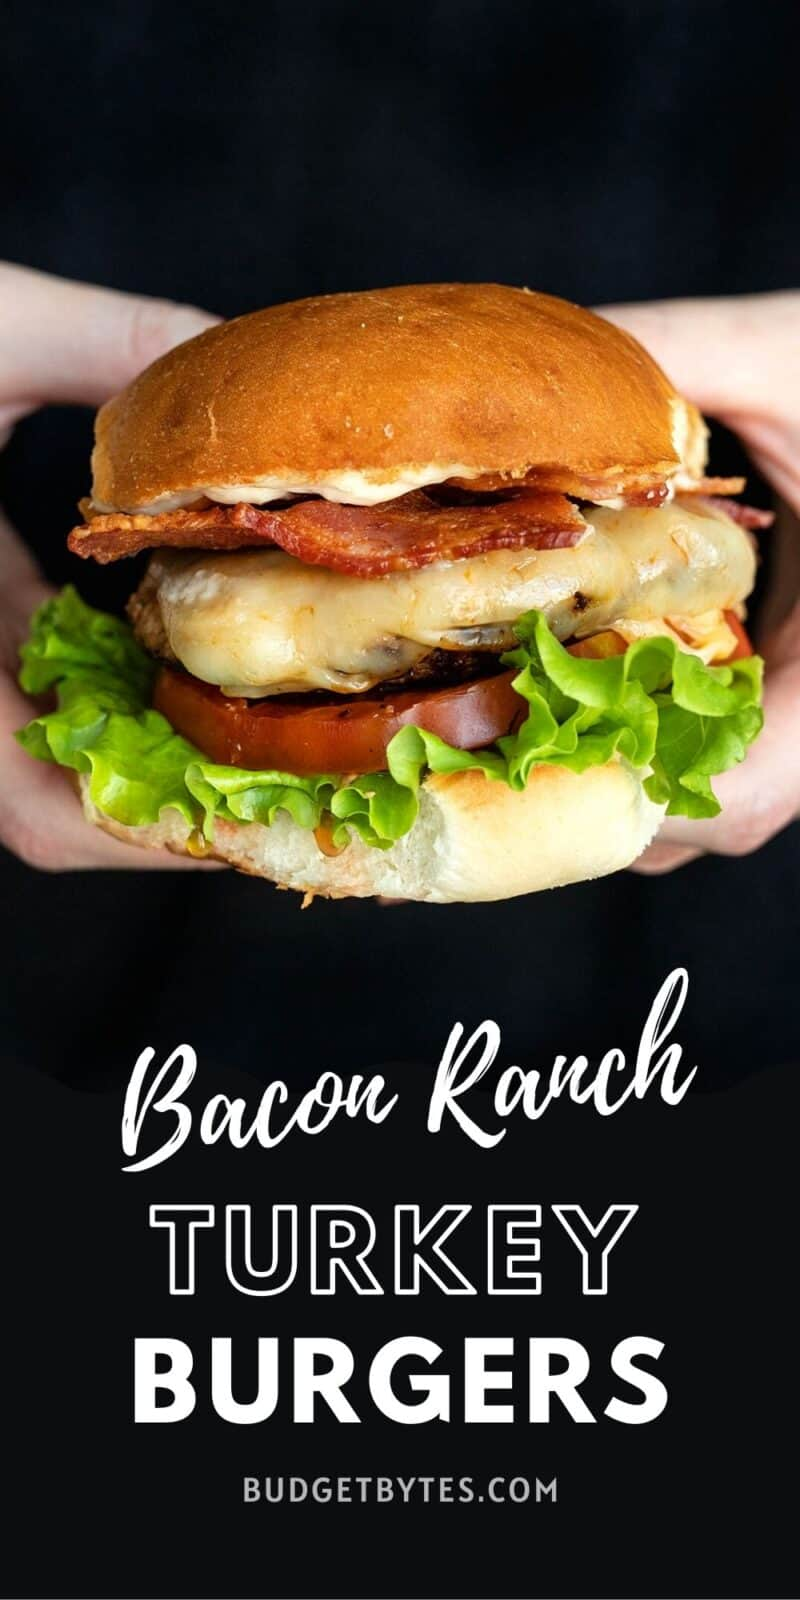 a single bacon ranch turkey burger held in hands, title text at the bottom